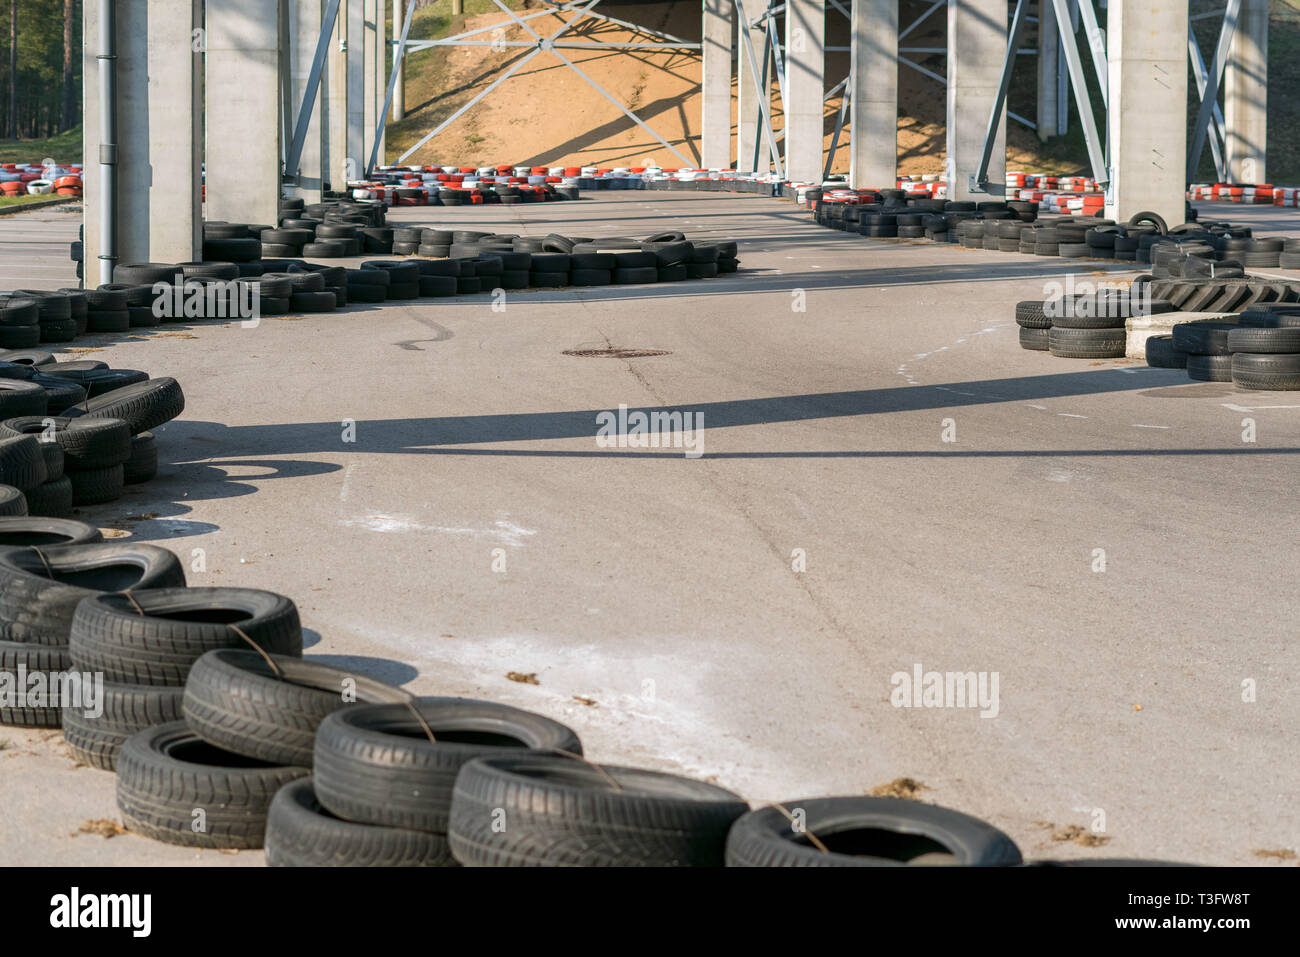 Go-kart racetrack circuit. Small karting racetrack, snake run formed out of car tires, motorsport for youth - Stock Image